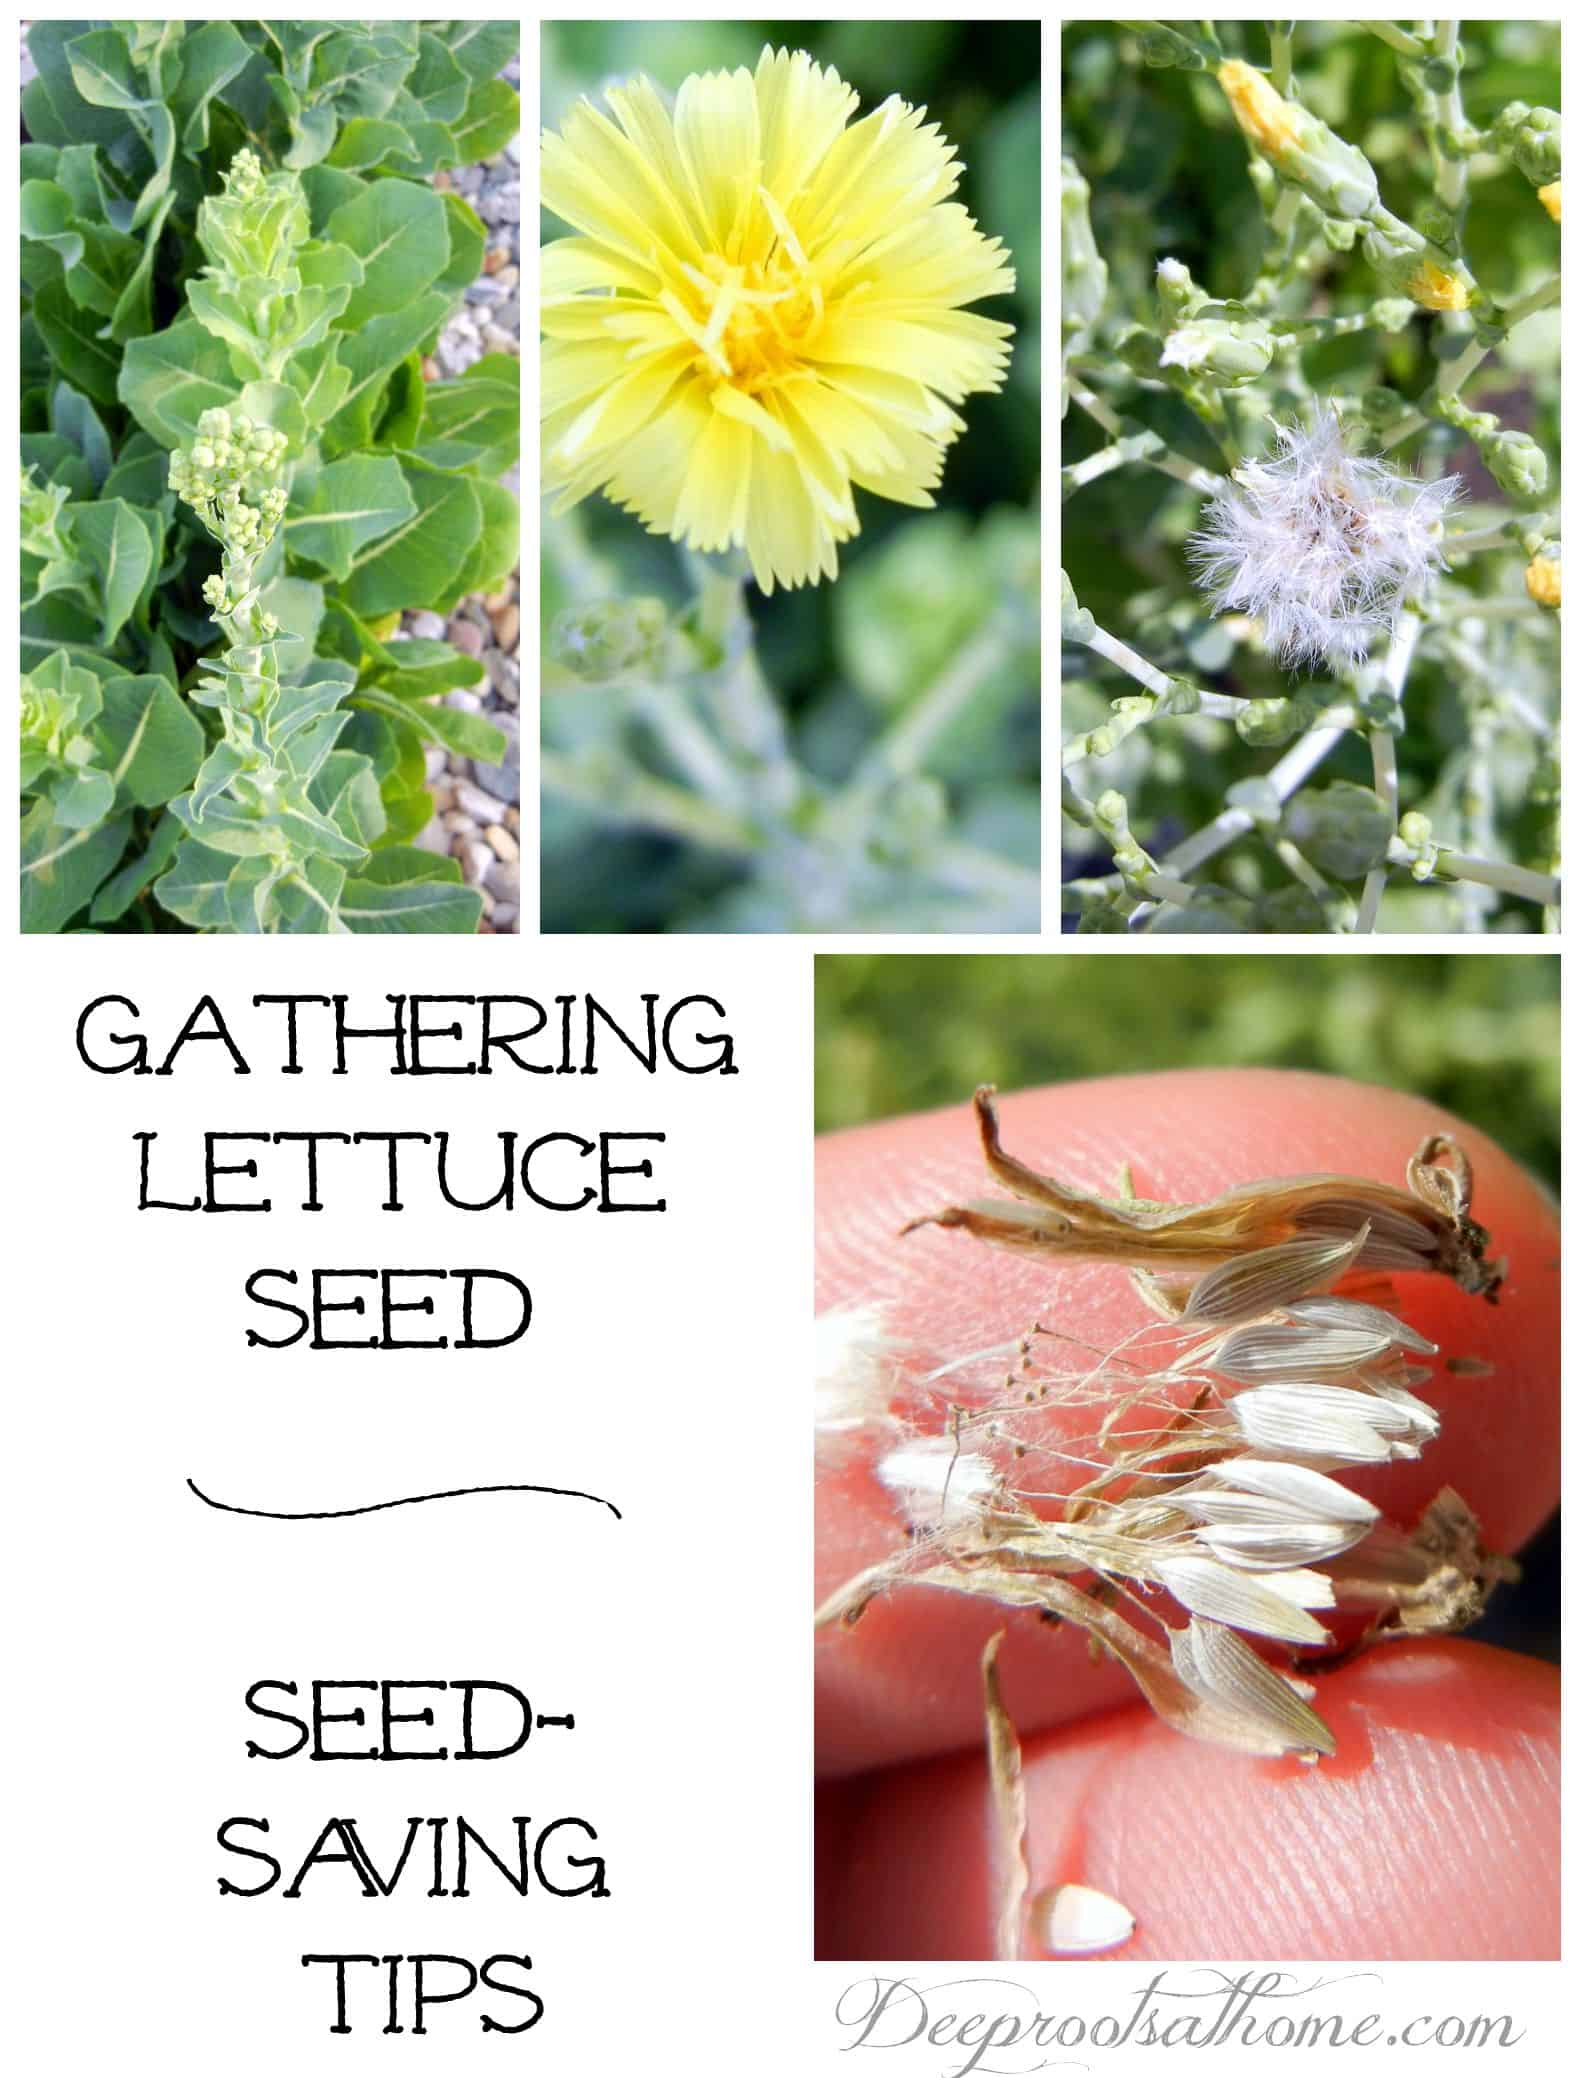 Gathering Lettuce Seed ~ Seed Saving Tips, flowers, adventure, science, thrift, preparedness training, culinary arts, living simply and responsibly, teach your children, pass on a heritage, sustainable skills, next generation, save money, frugal living, sustainable, homesteading, following God's natural plan, growing things, germination, growth, fruit bearing, prepared, proactive, your families needs, produce, no chemicals, no GMOs, full of nutrients, rich soils, tastes great, Vivian Romaine, Burpee seed, bolting, past its prime, spent plants, flower stalks, blooms, sap, sticky, when to pick, release seed, scattering seeds, spinach seed, celery seed, dill seed, herbs, herbal gardening, drying, recording date, keeping a log, keeper of the home, homemaking, homemaker, planting, harvesting, watering, collecting, Romaine lettuce, Caesar salad, salad fixings, gardening, September, fall garden, cool weather crops,